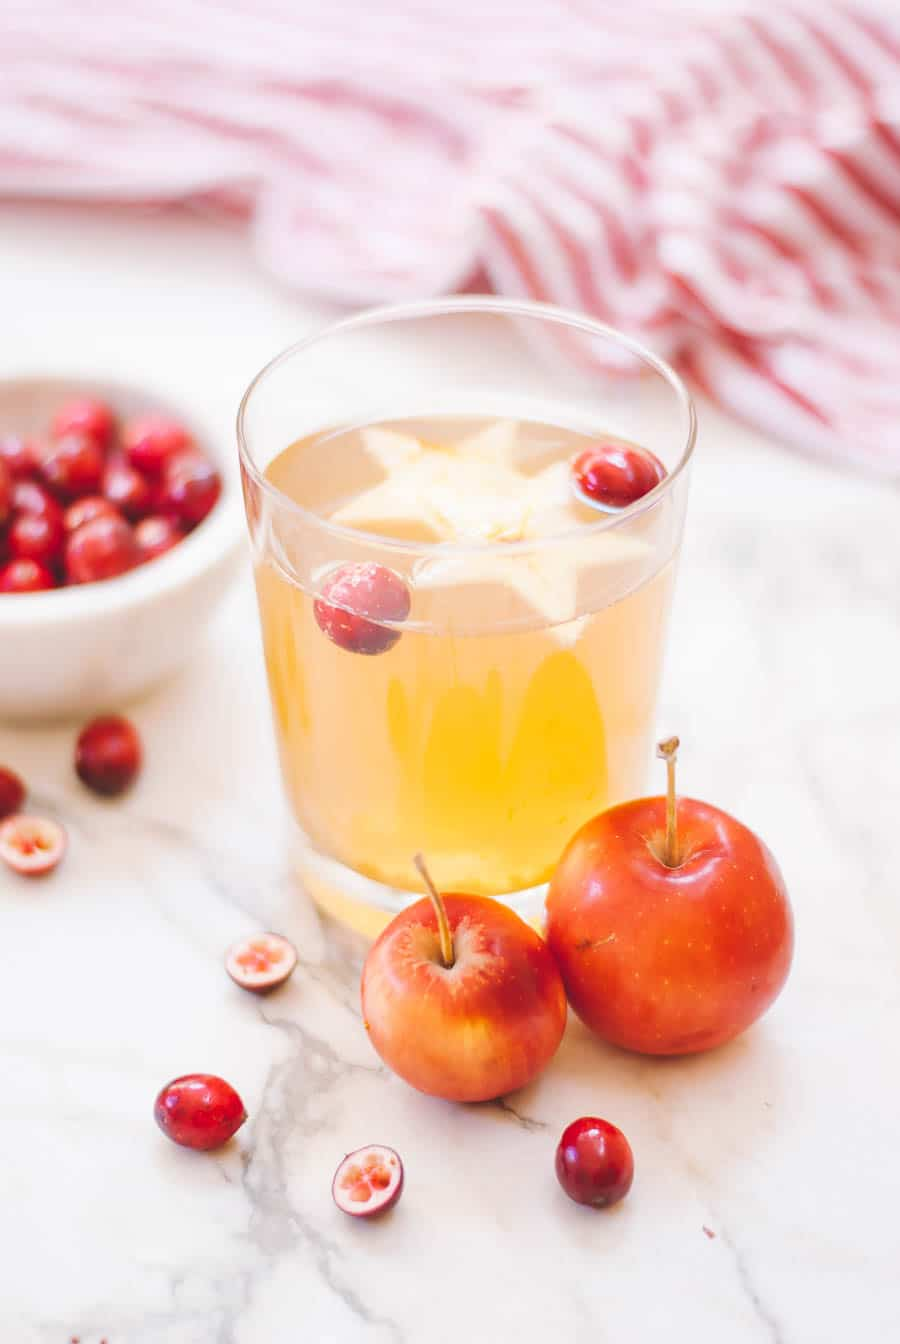 Holiday Cider with crab apples and cranberries in a bowl